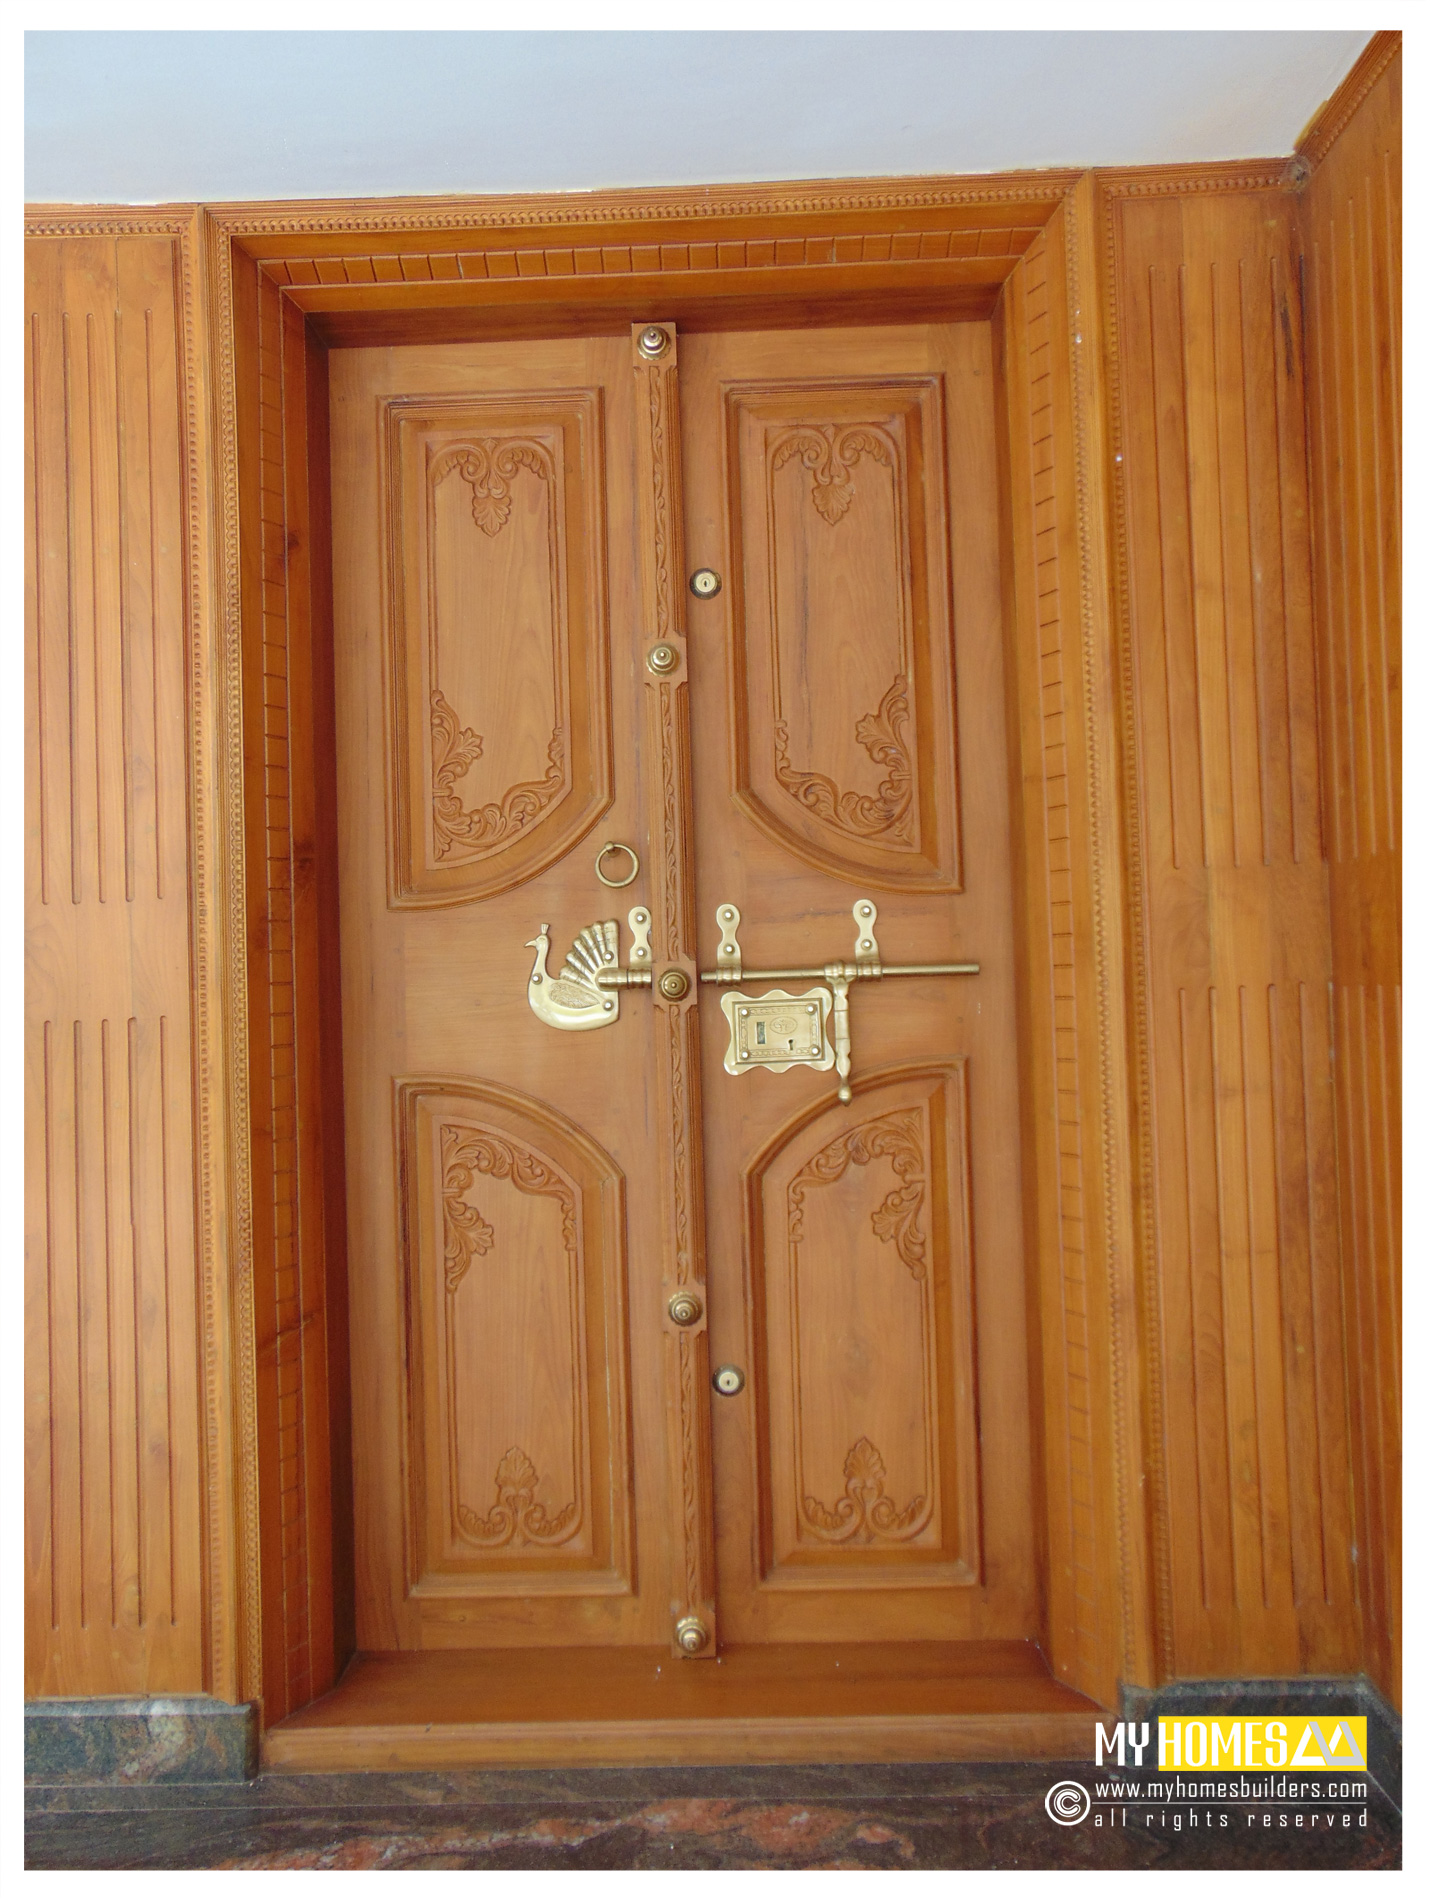 New idea for homes main door designs in kerala india for Main door design images